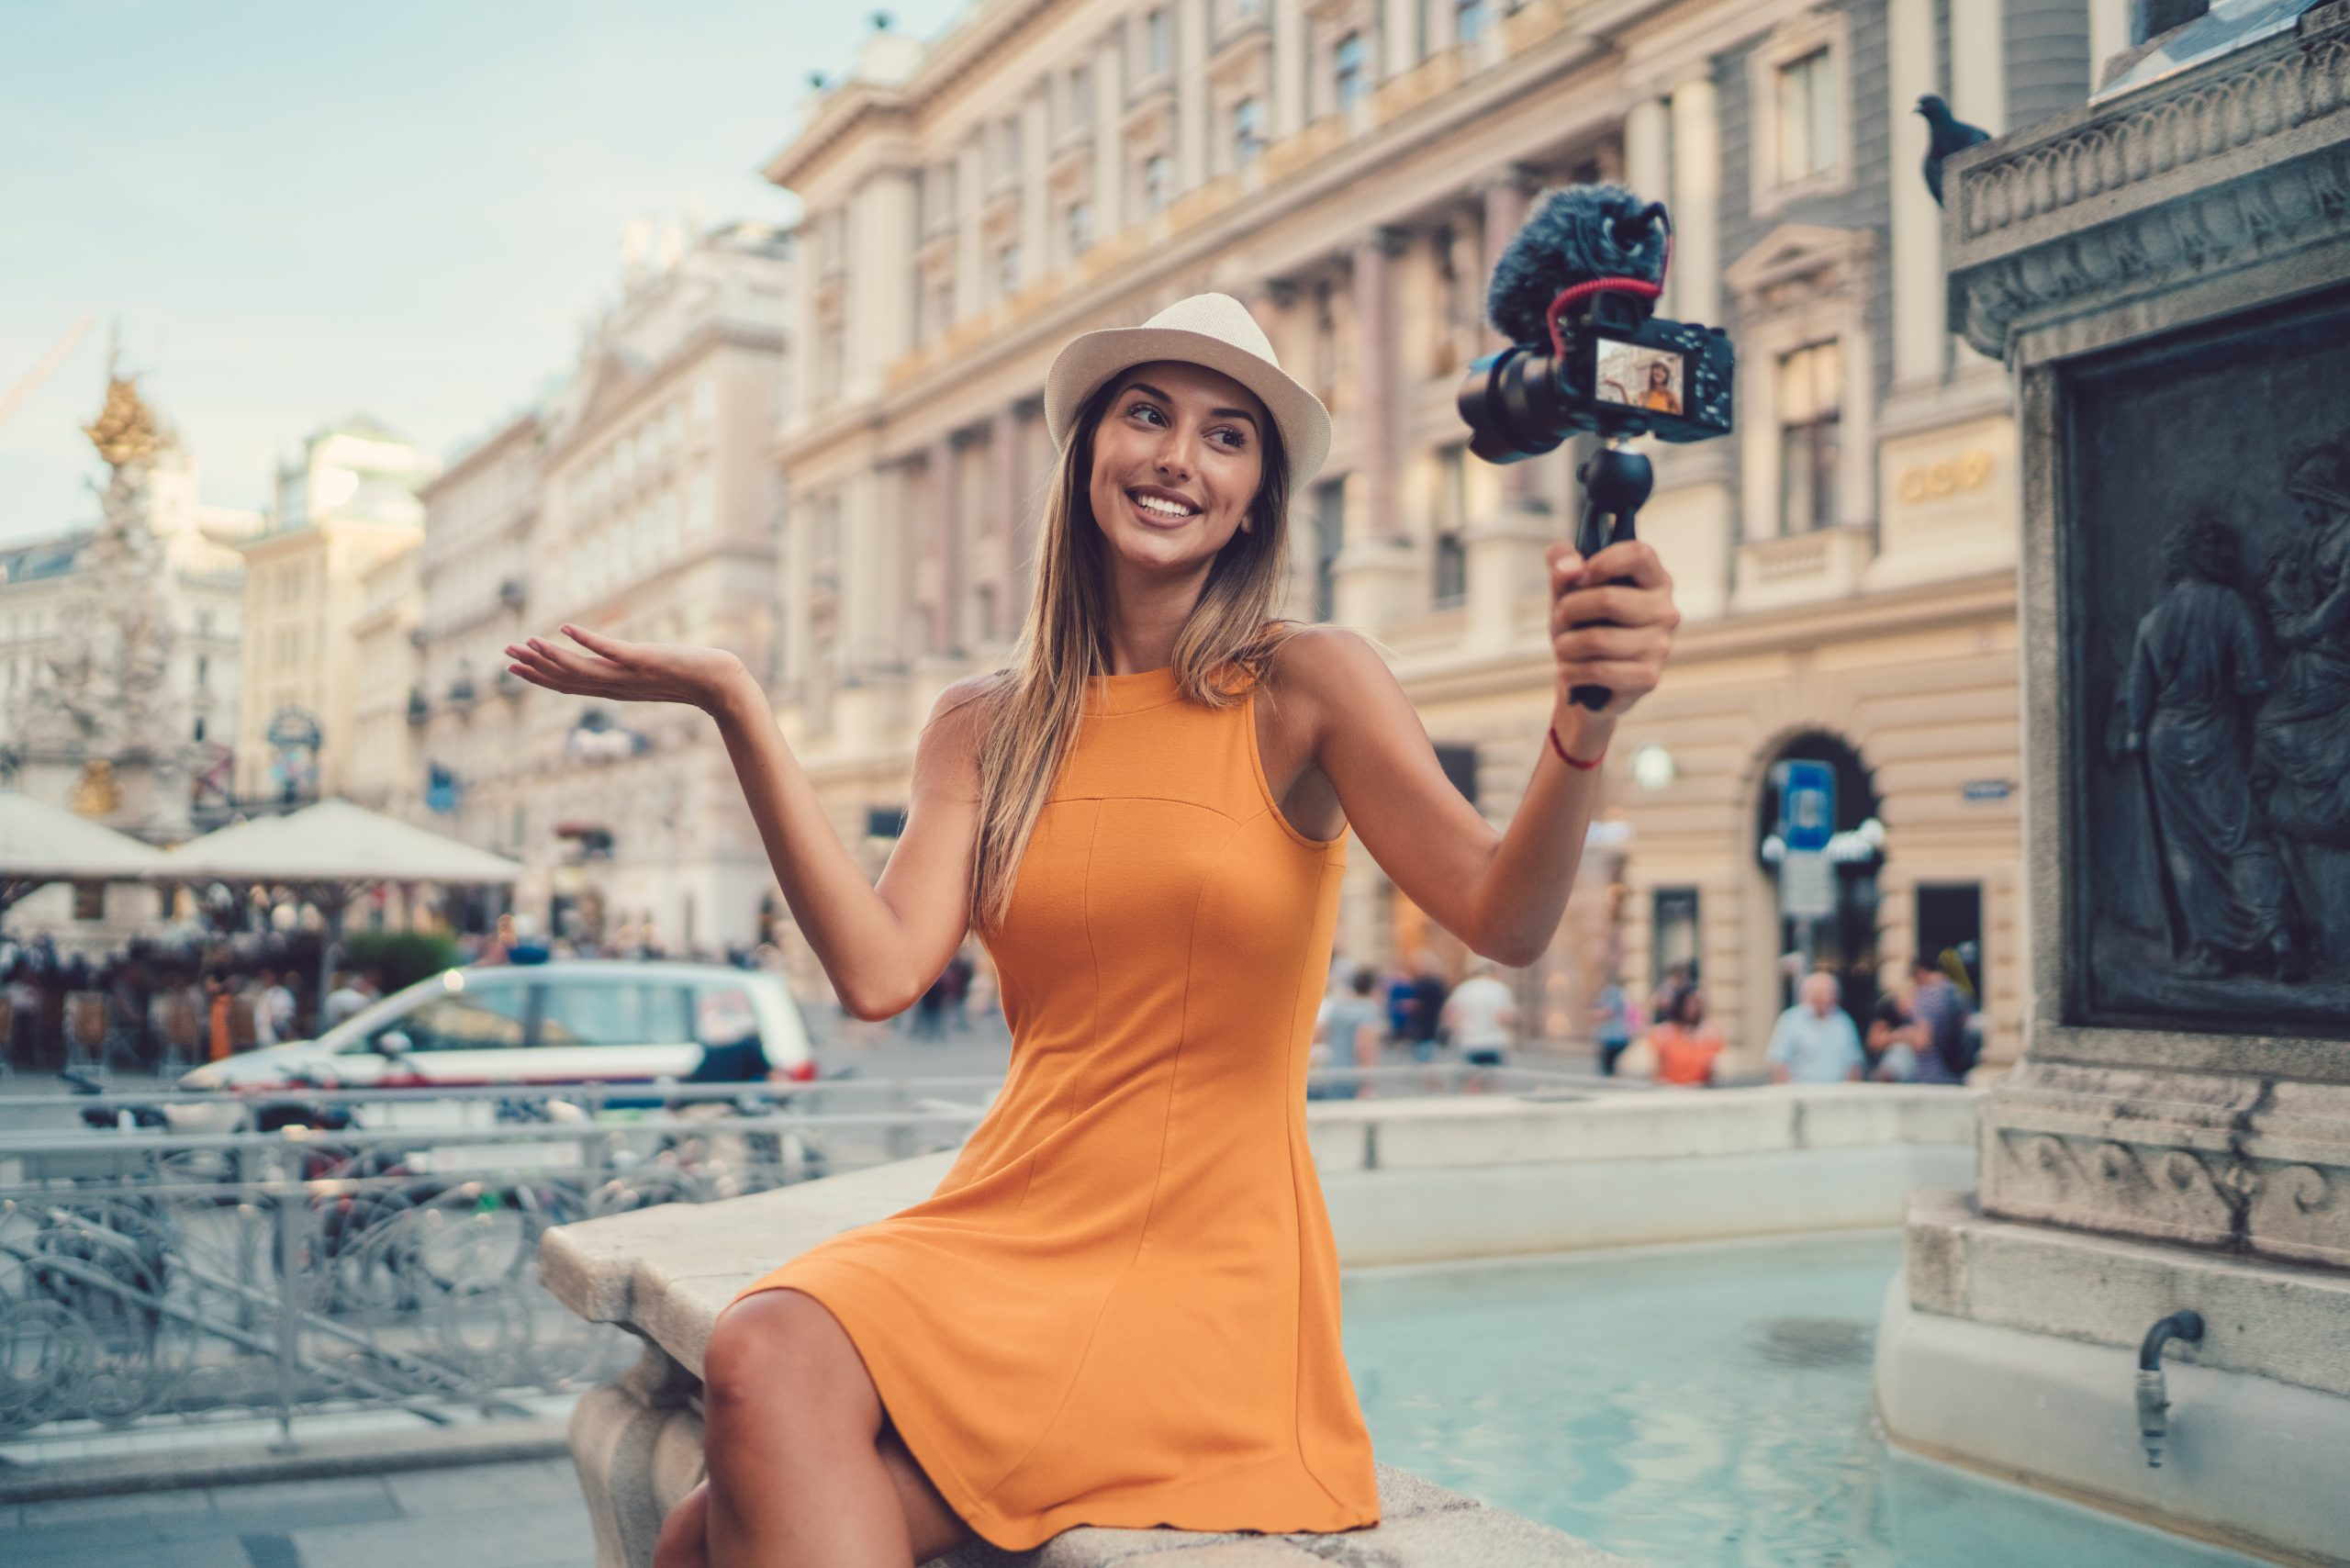 Top tips for Influencer marketing success in 2019